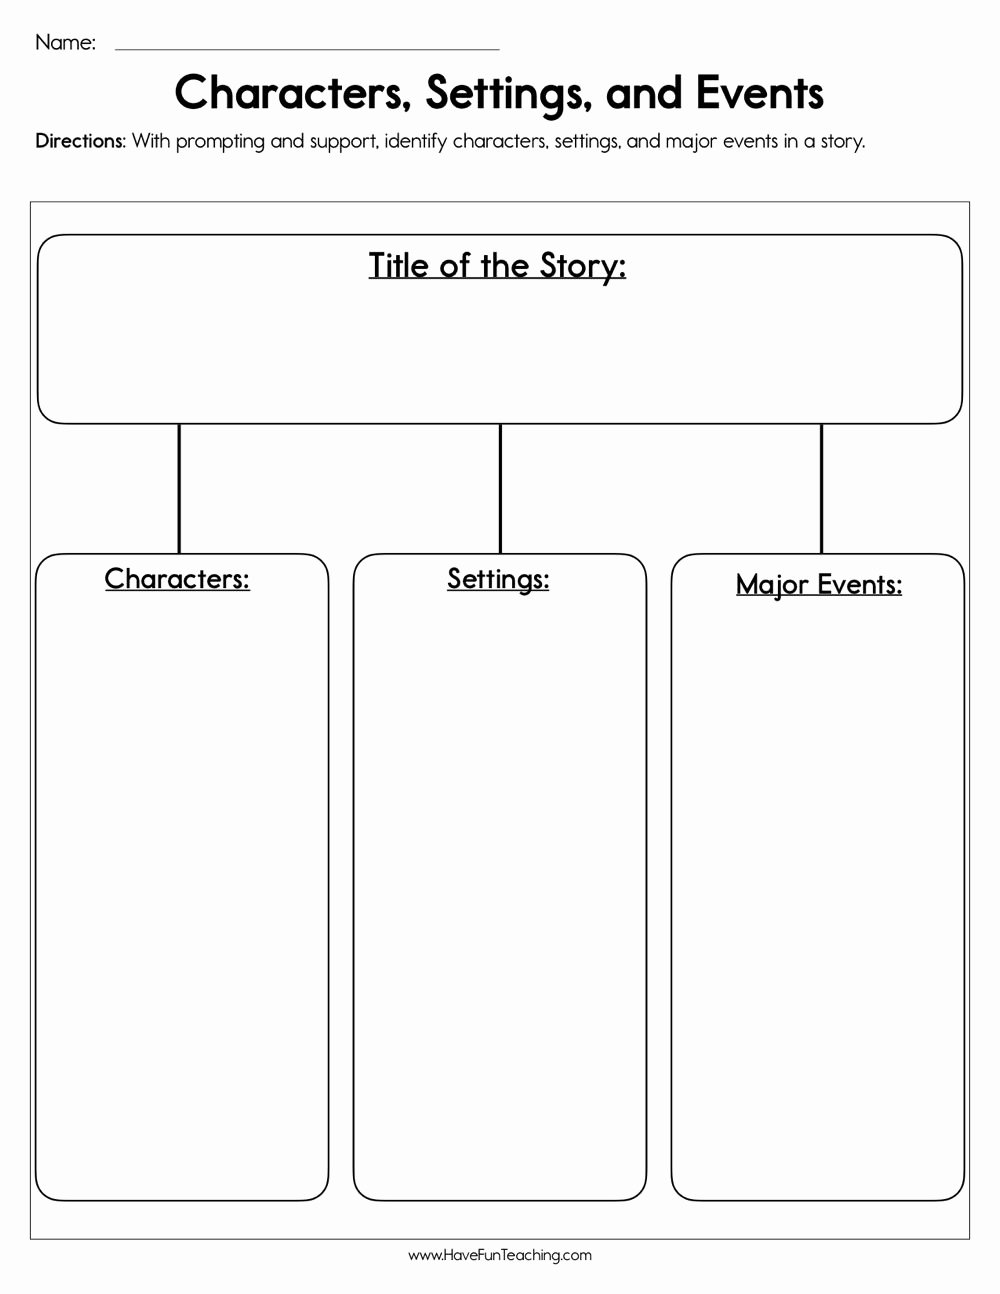 Character Setting and Plot Worksheets Fresh Characters Settings and events Worksheet